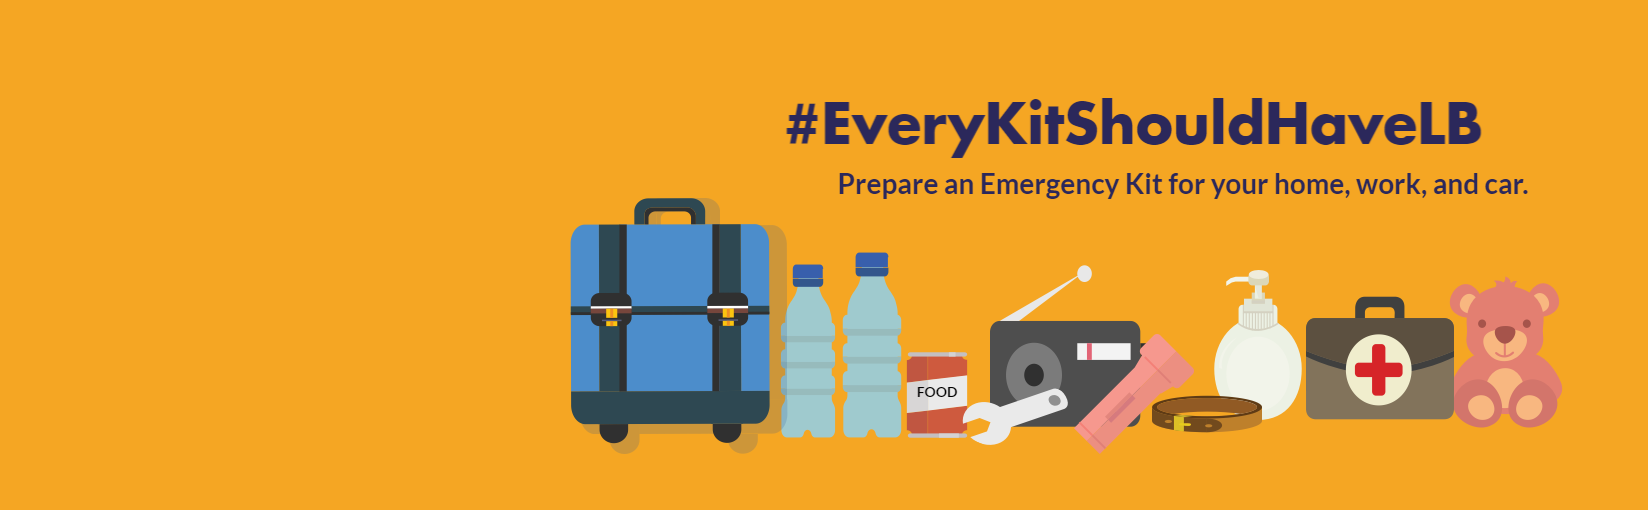 Prepare and Emergency Kit